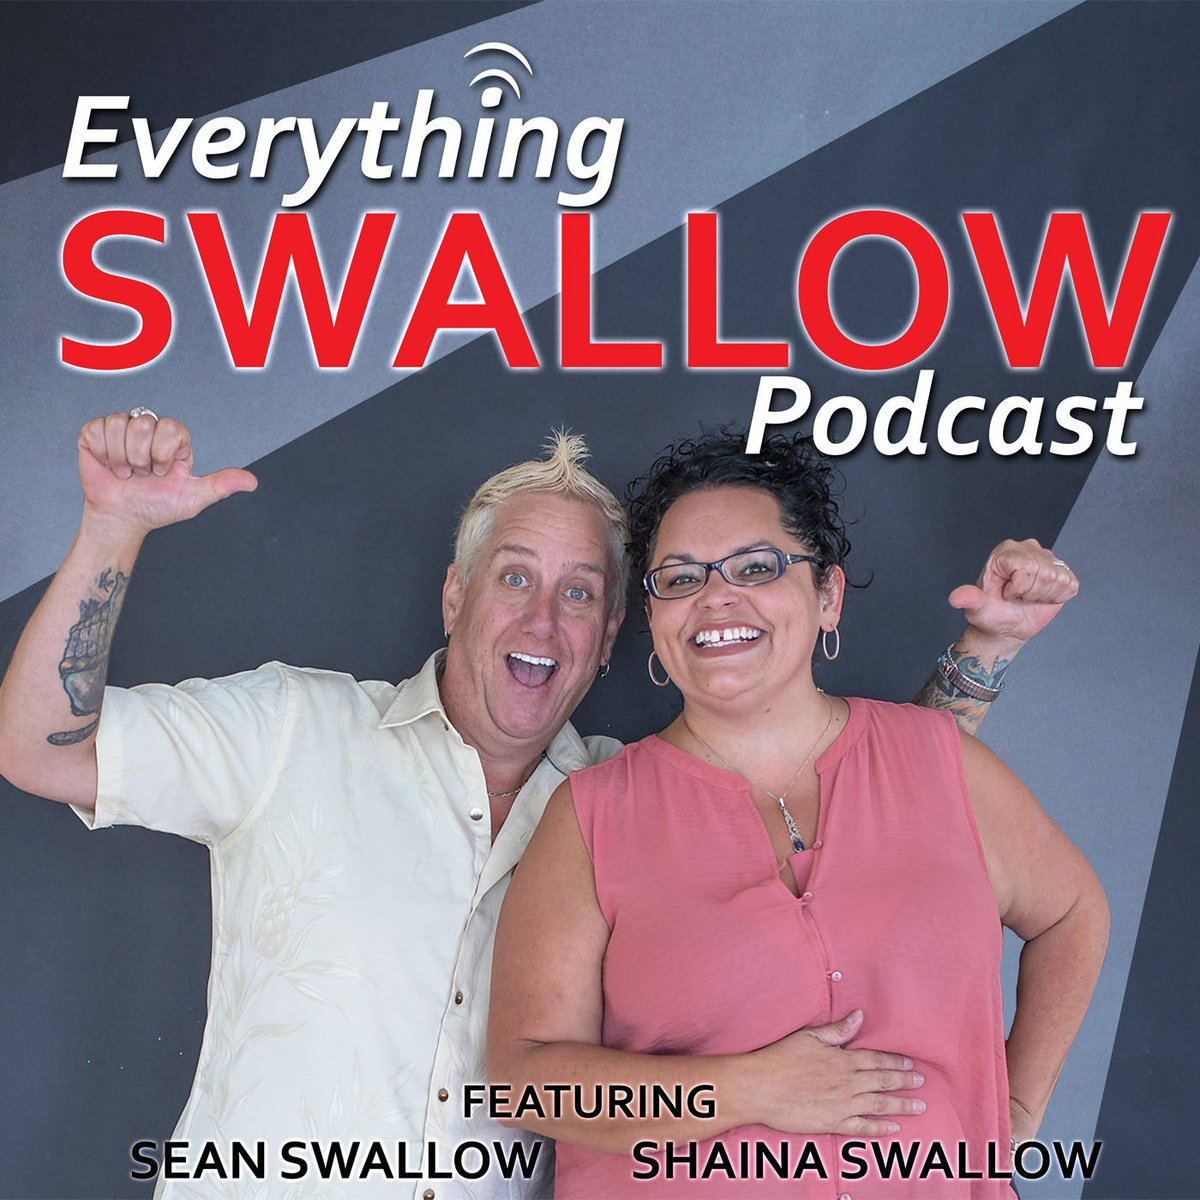 Check out one of our top ten January livestreamers, @SeanSwallow !      #podcast #podcaster #podcasting #podcasts #podcasters #podbeanfamily #podbeanlive #everythingswallowpodcast #Livestream